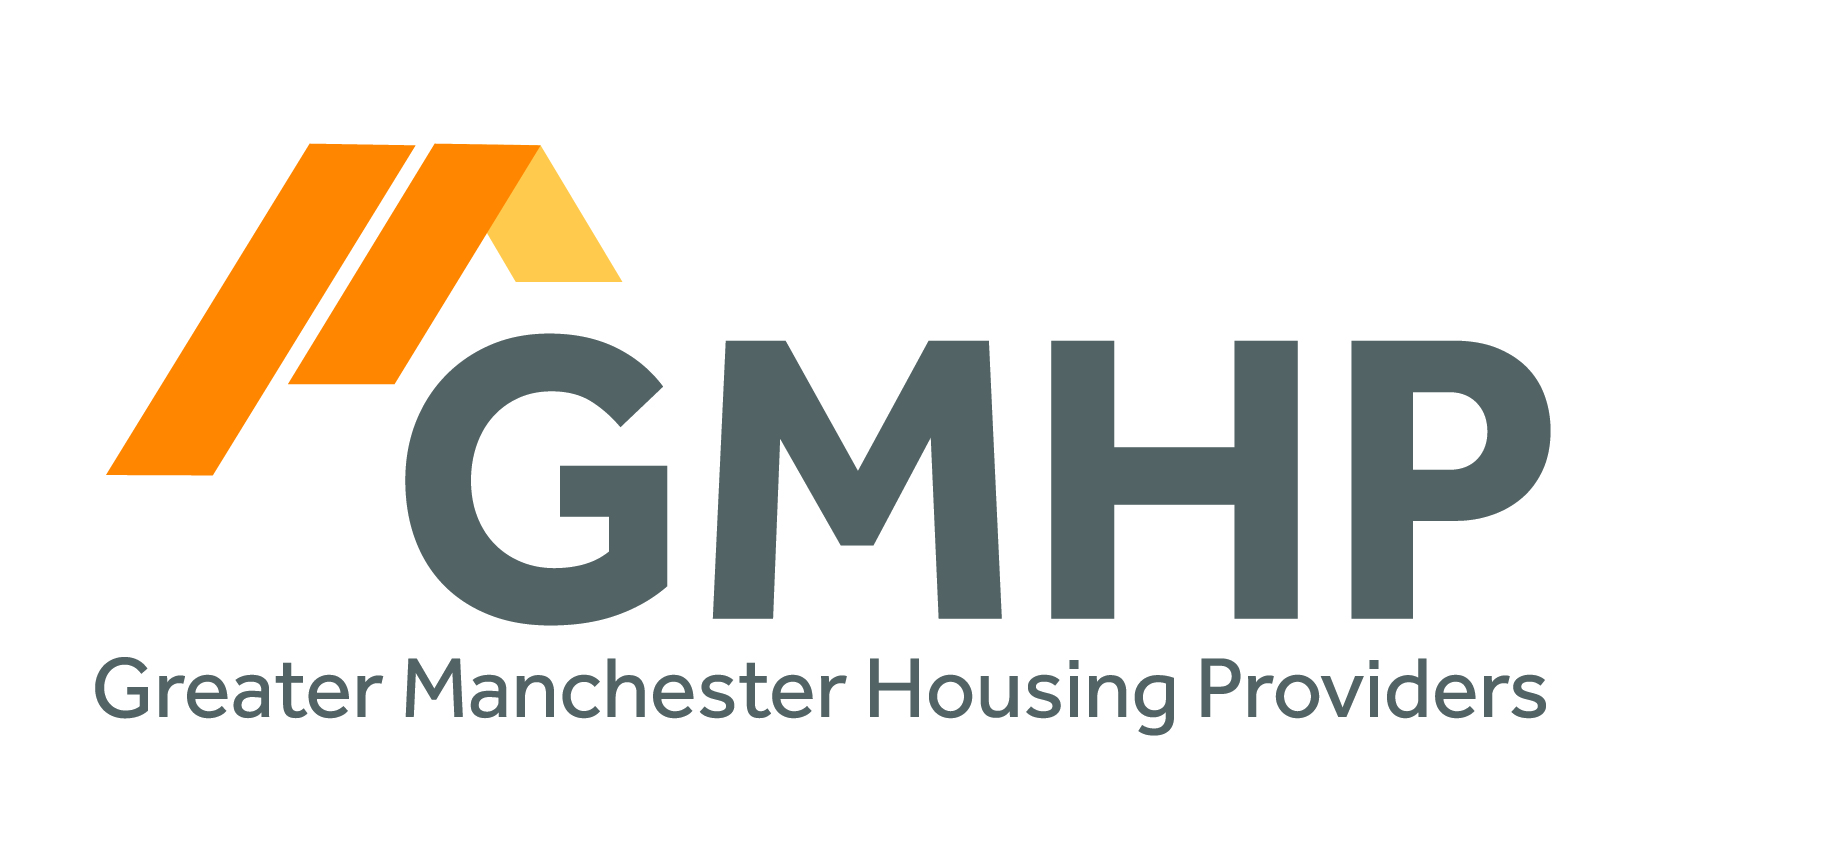 Greater Manchester Housing Providers logo